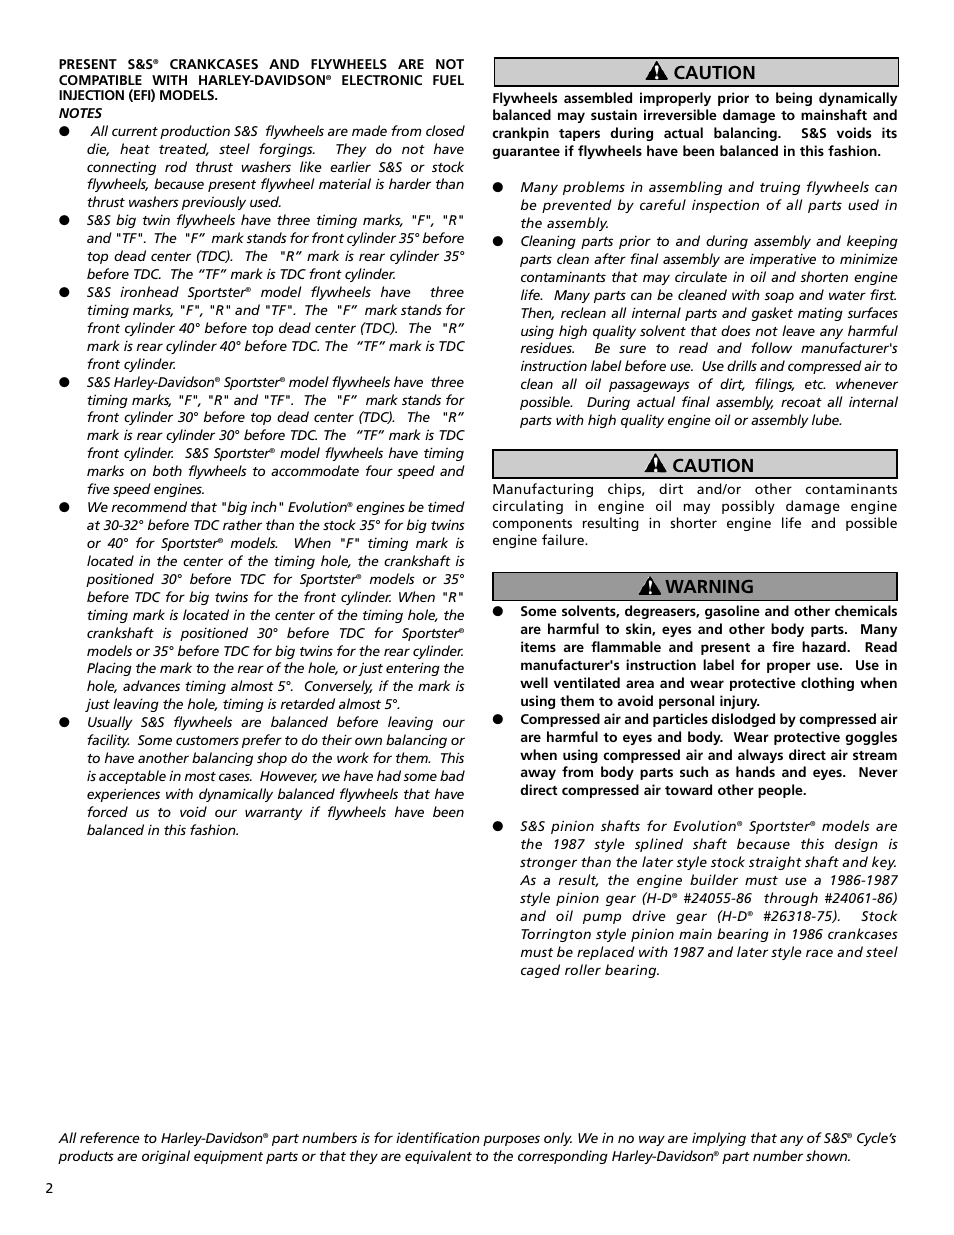 Caution, Caution warning | S&S Cycle General Flywheel User Manual